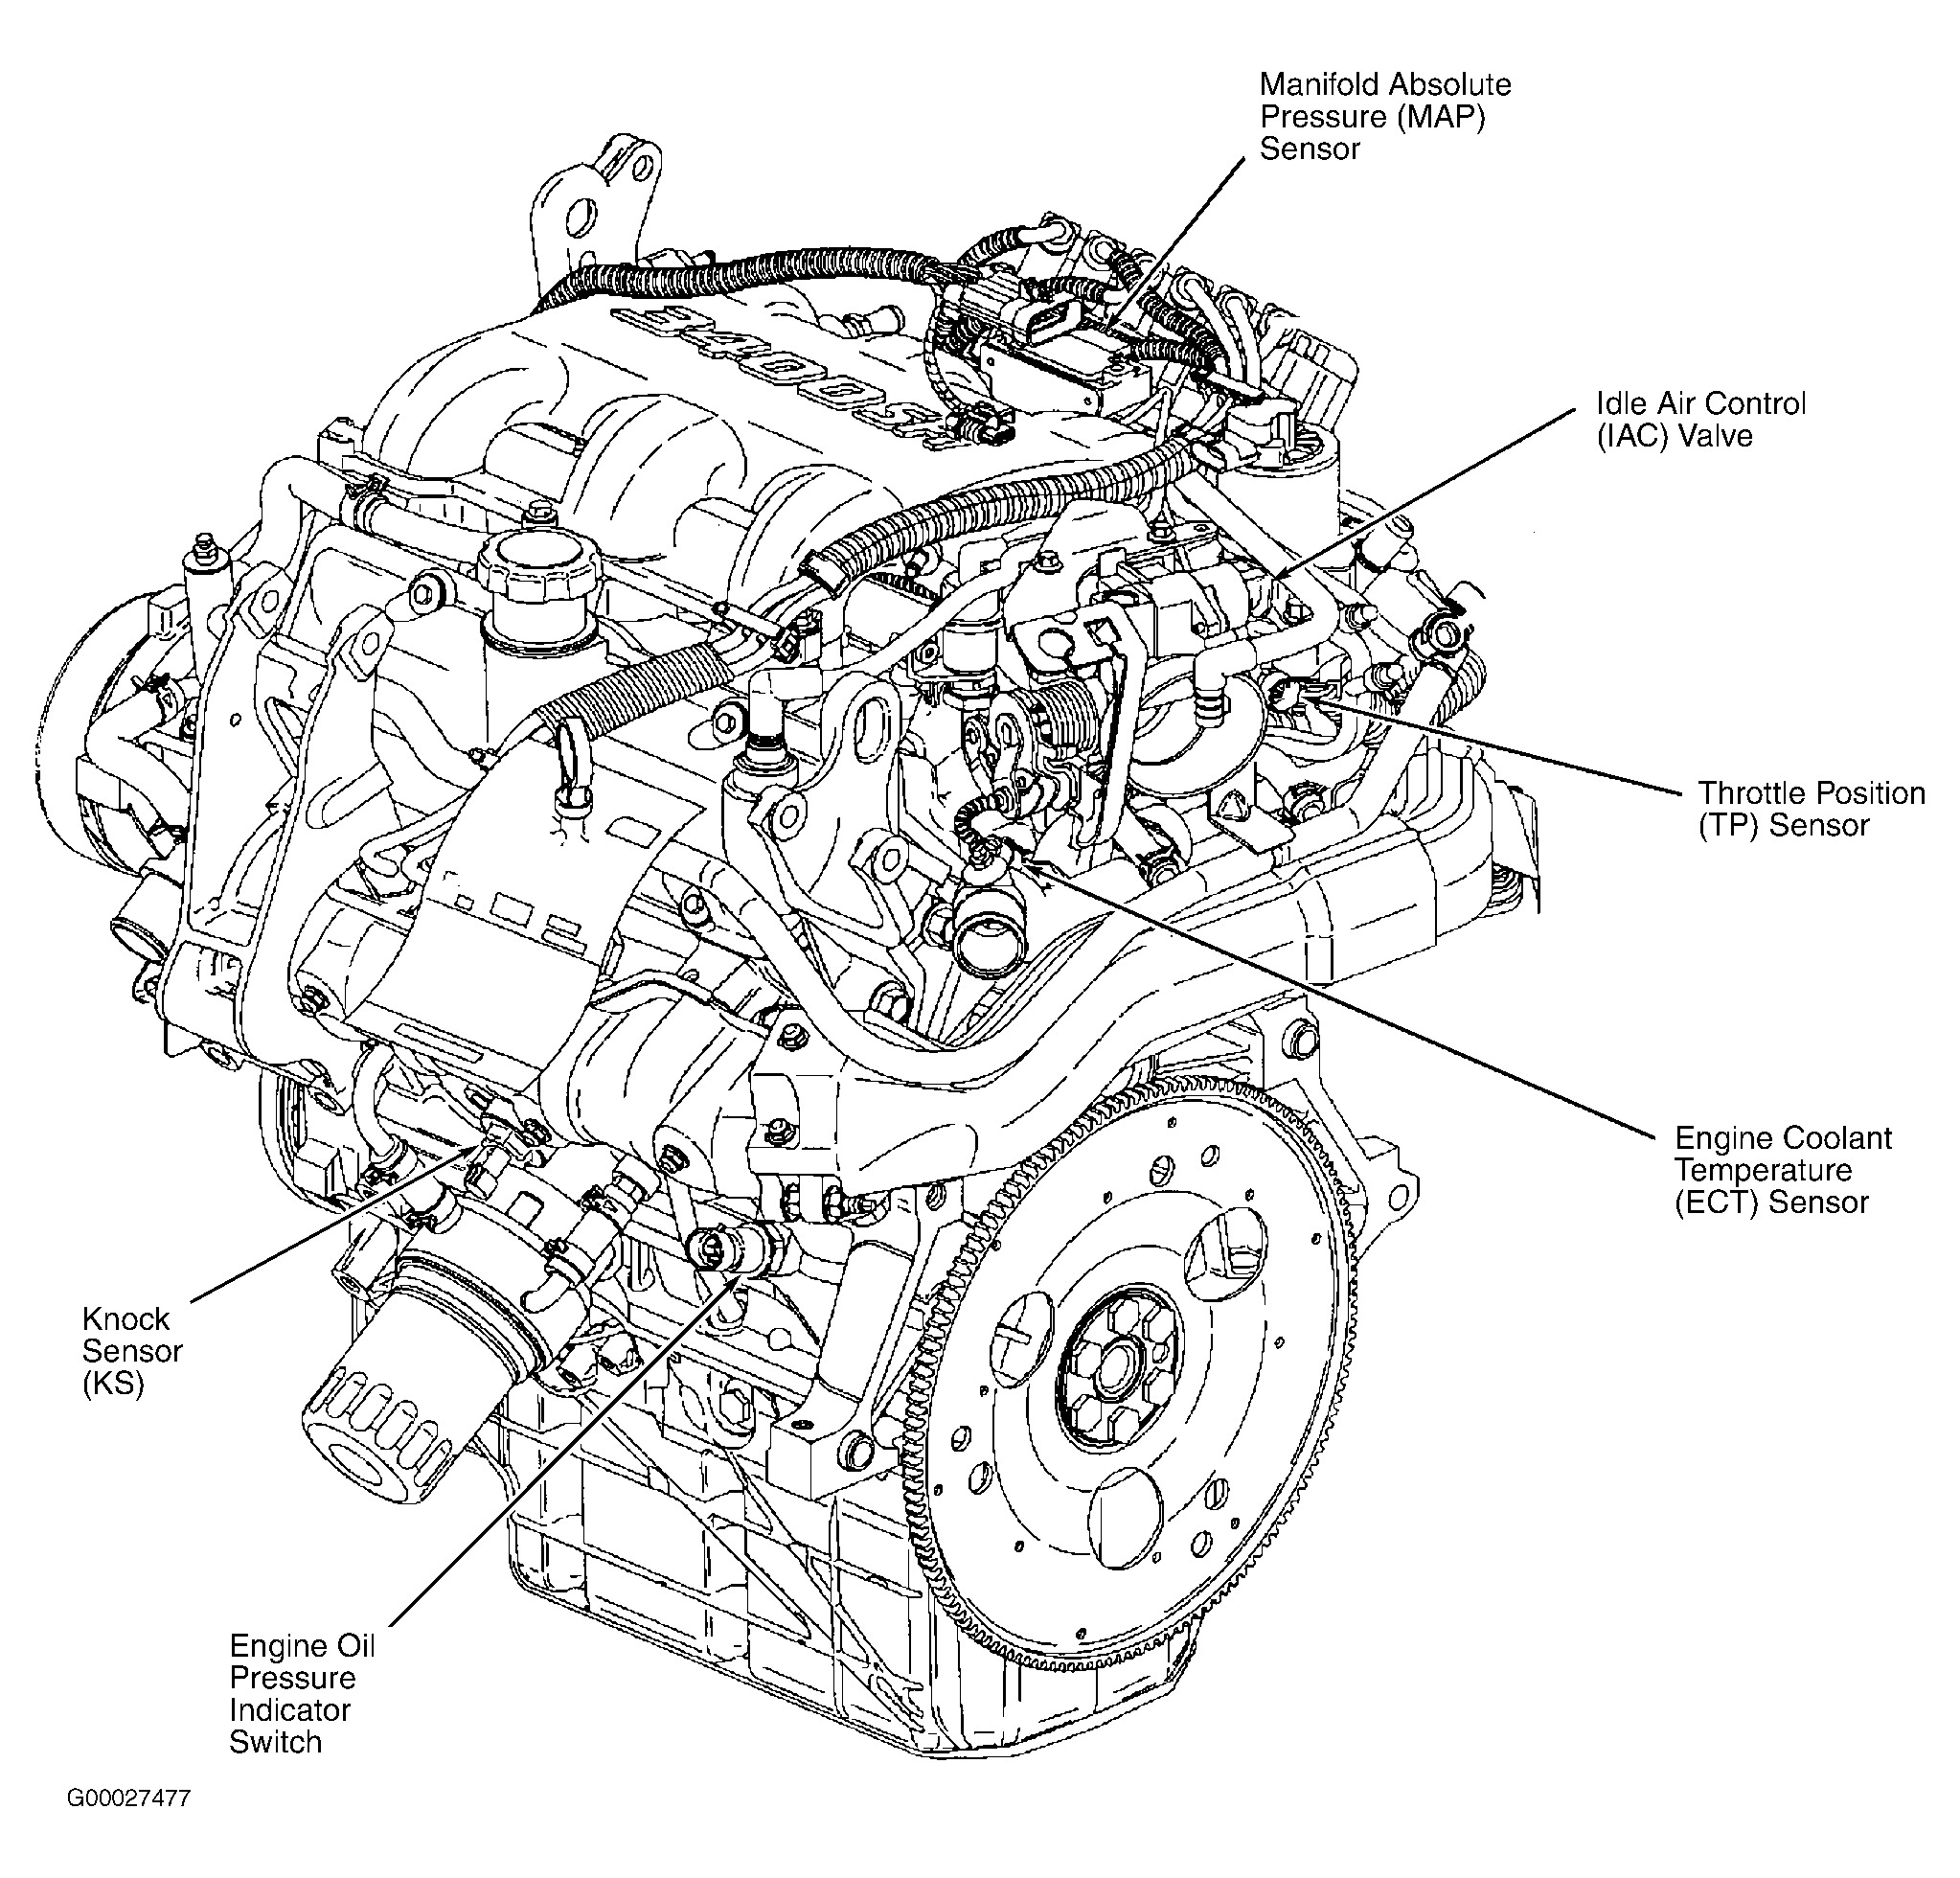 2001 Chevy Venture Fuse Box Diagram : 35 Wiring Diagram